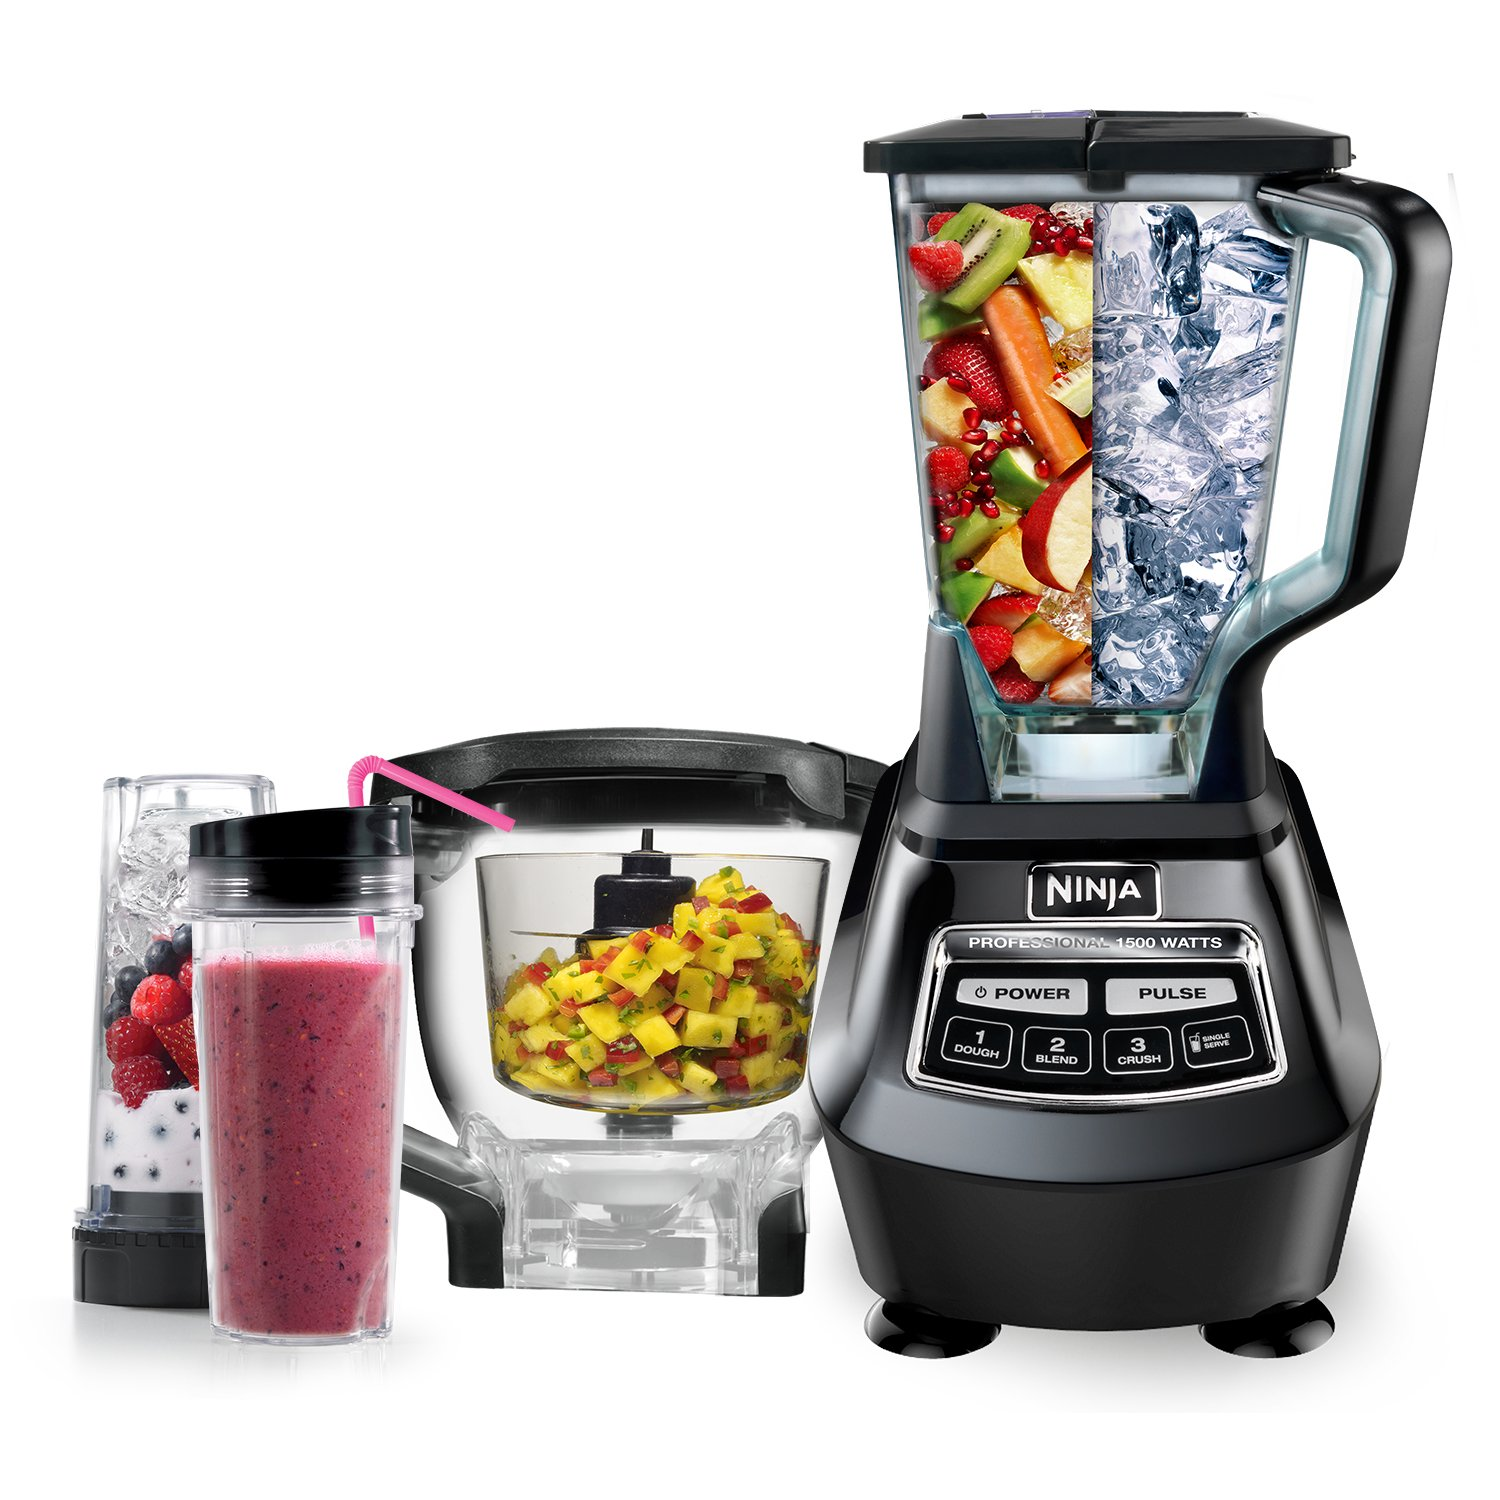 Amazon.com: Ninja Mega Kitchen System (BL771): Electric Countertop ...